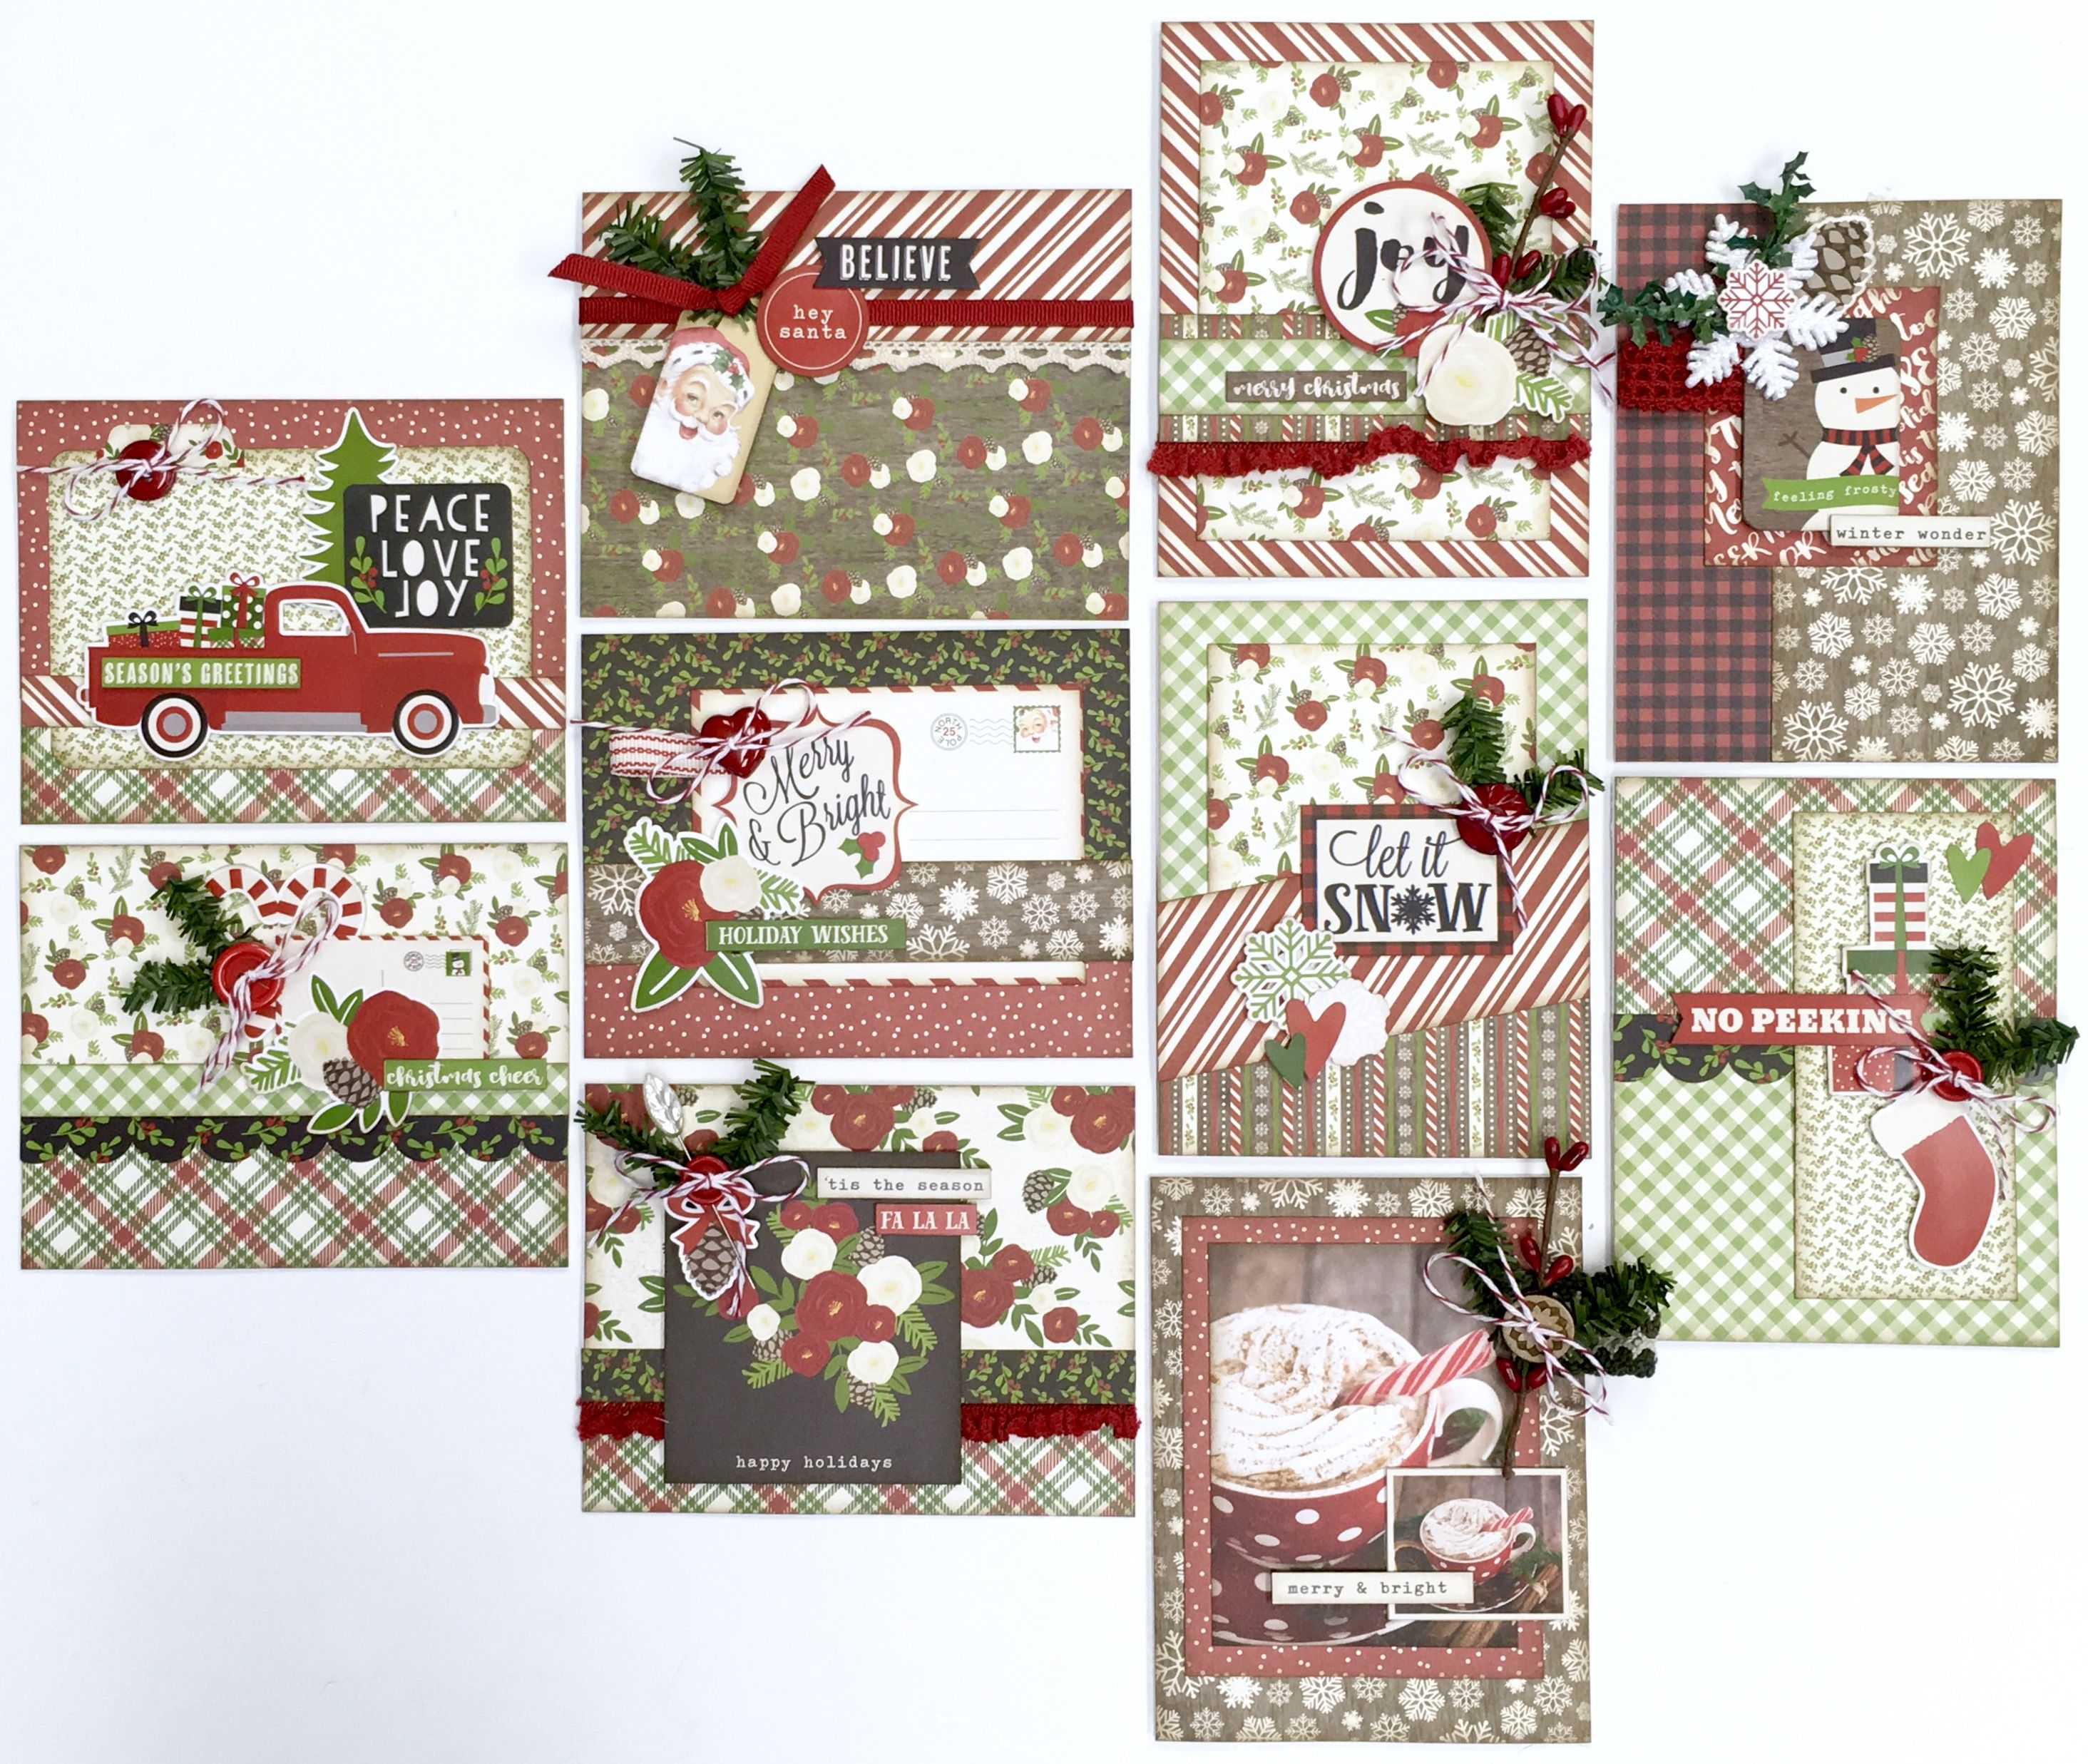 Handmade Christmas Card Kits Just In Time For The Holiday Season Christmas Note Cards Christmas Card Set Christmas Cards Handmade